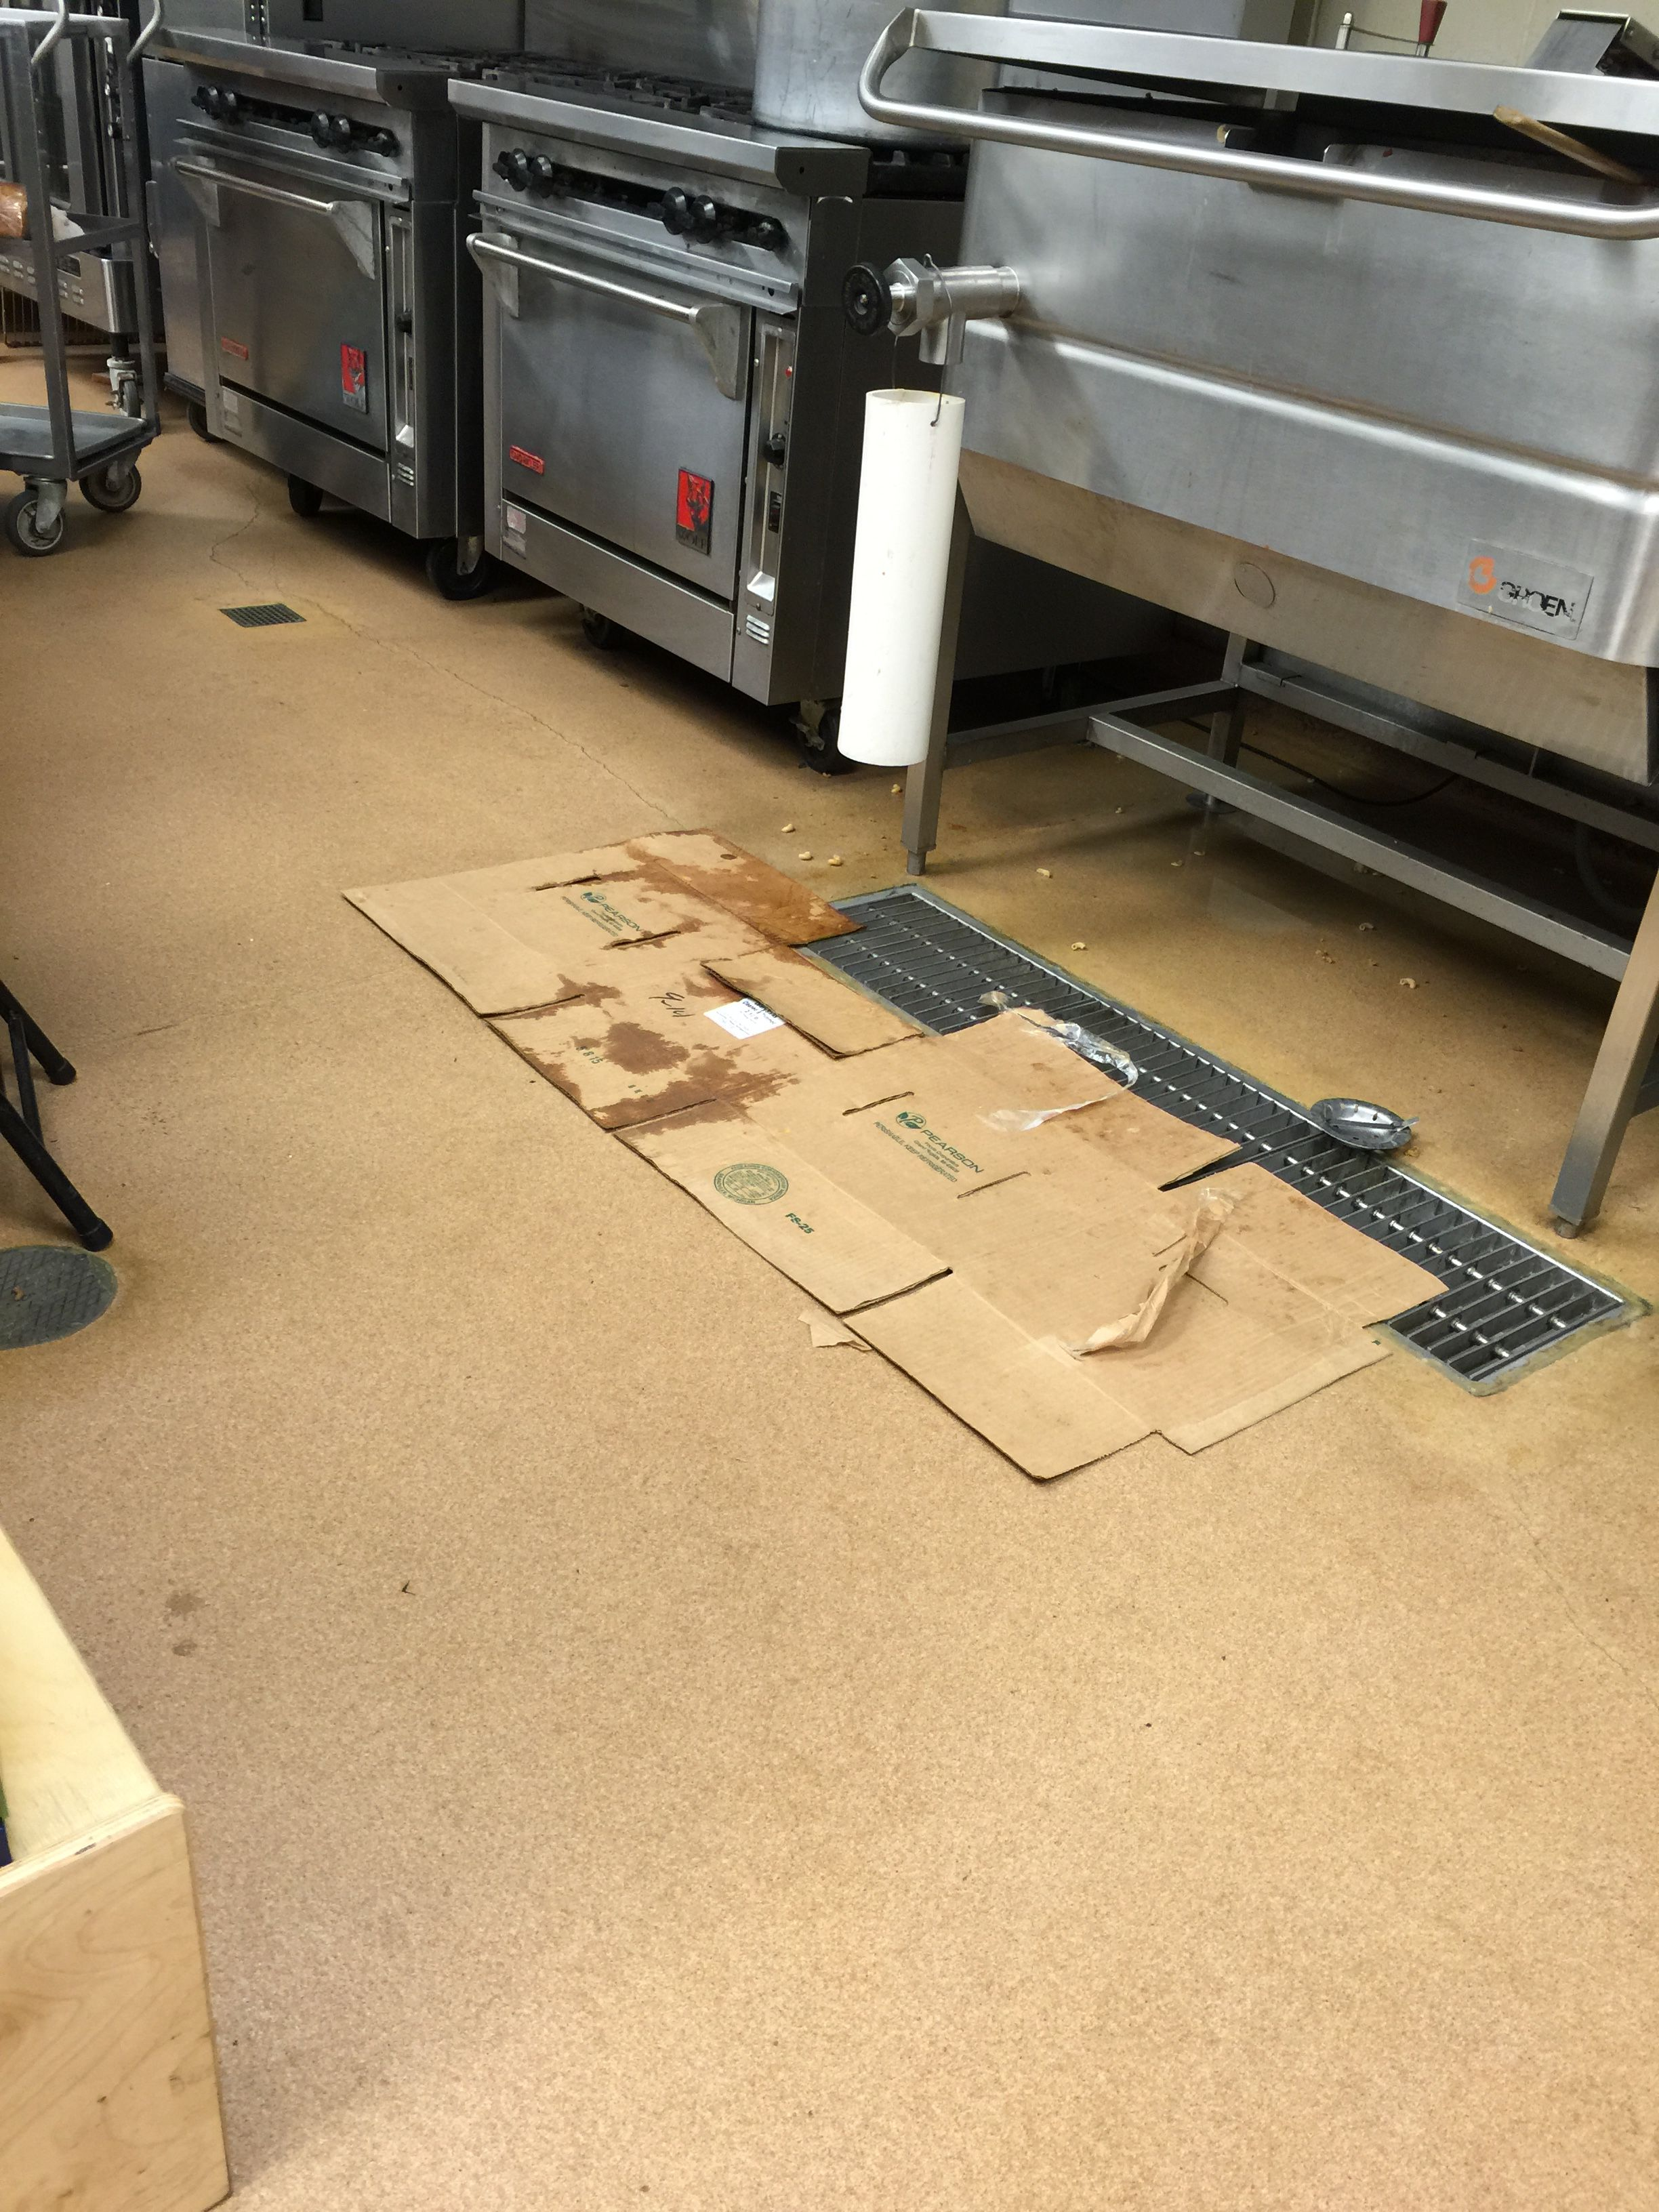 Cook Uses Cardboard As Floor Mat - October 2015